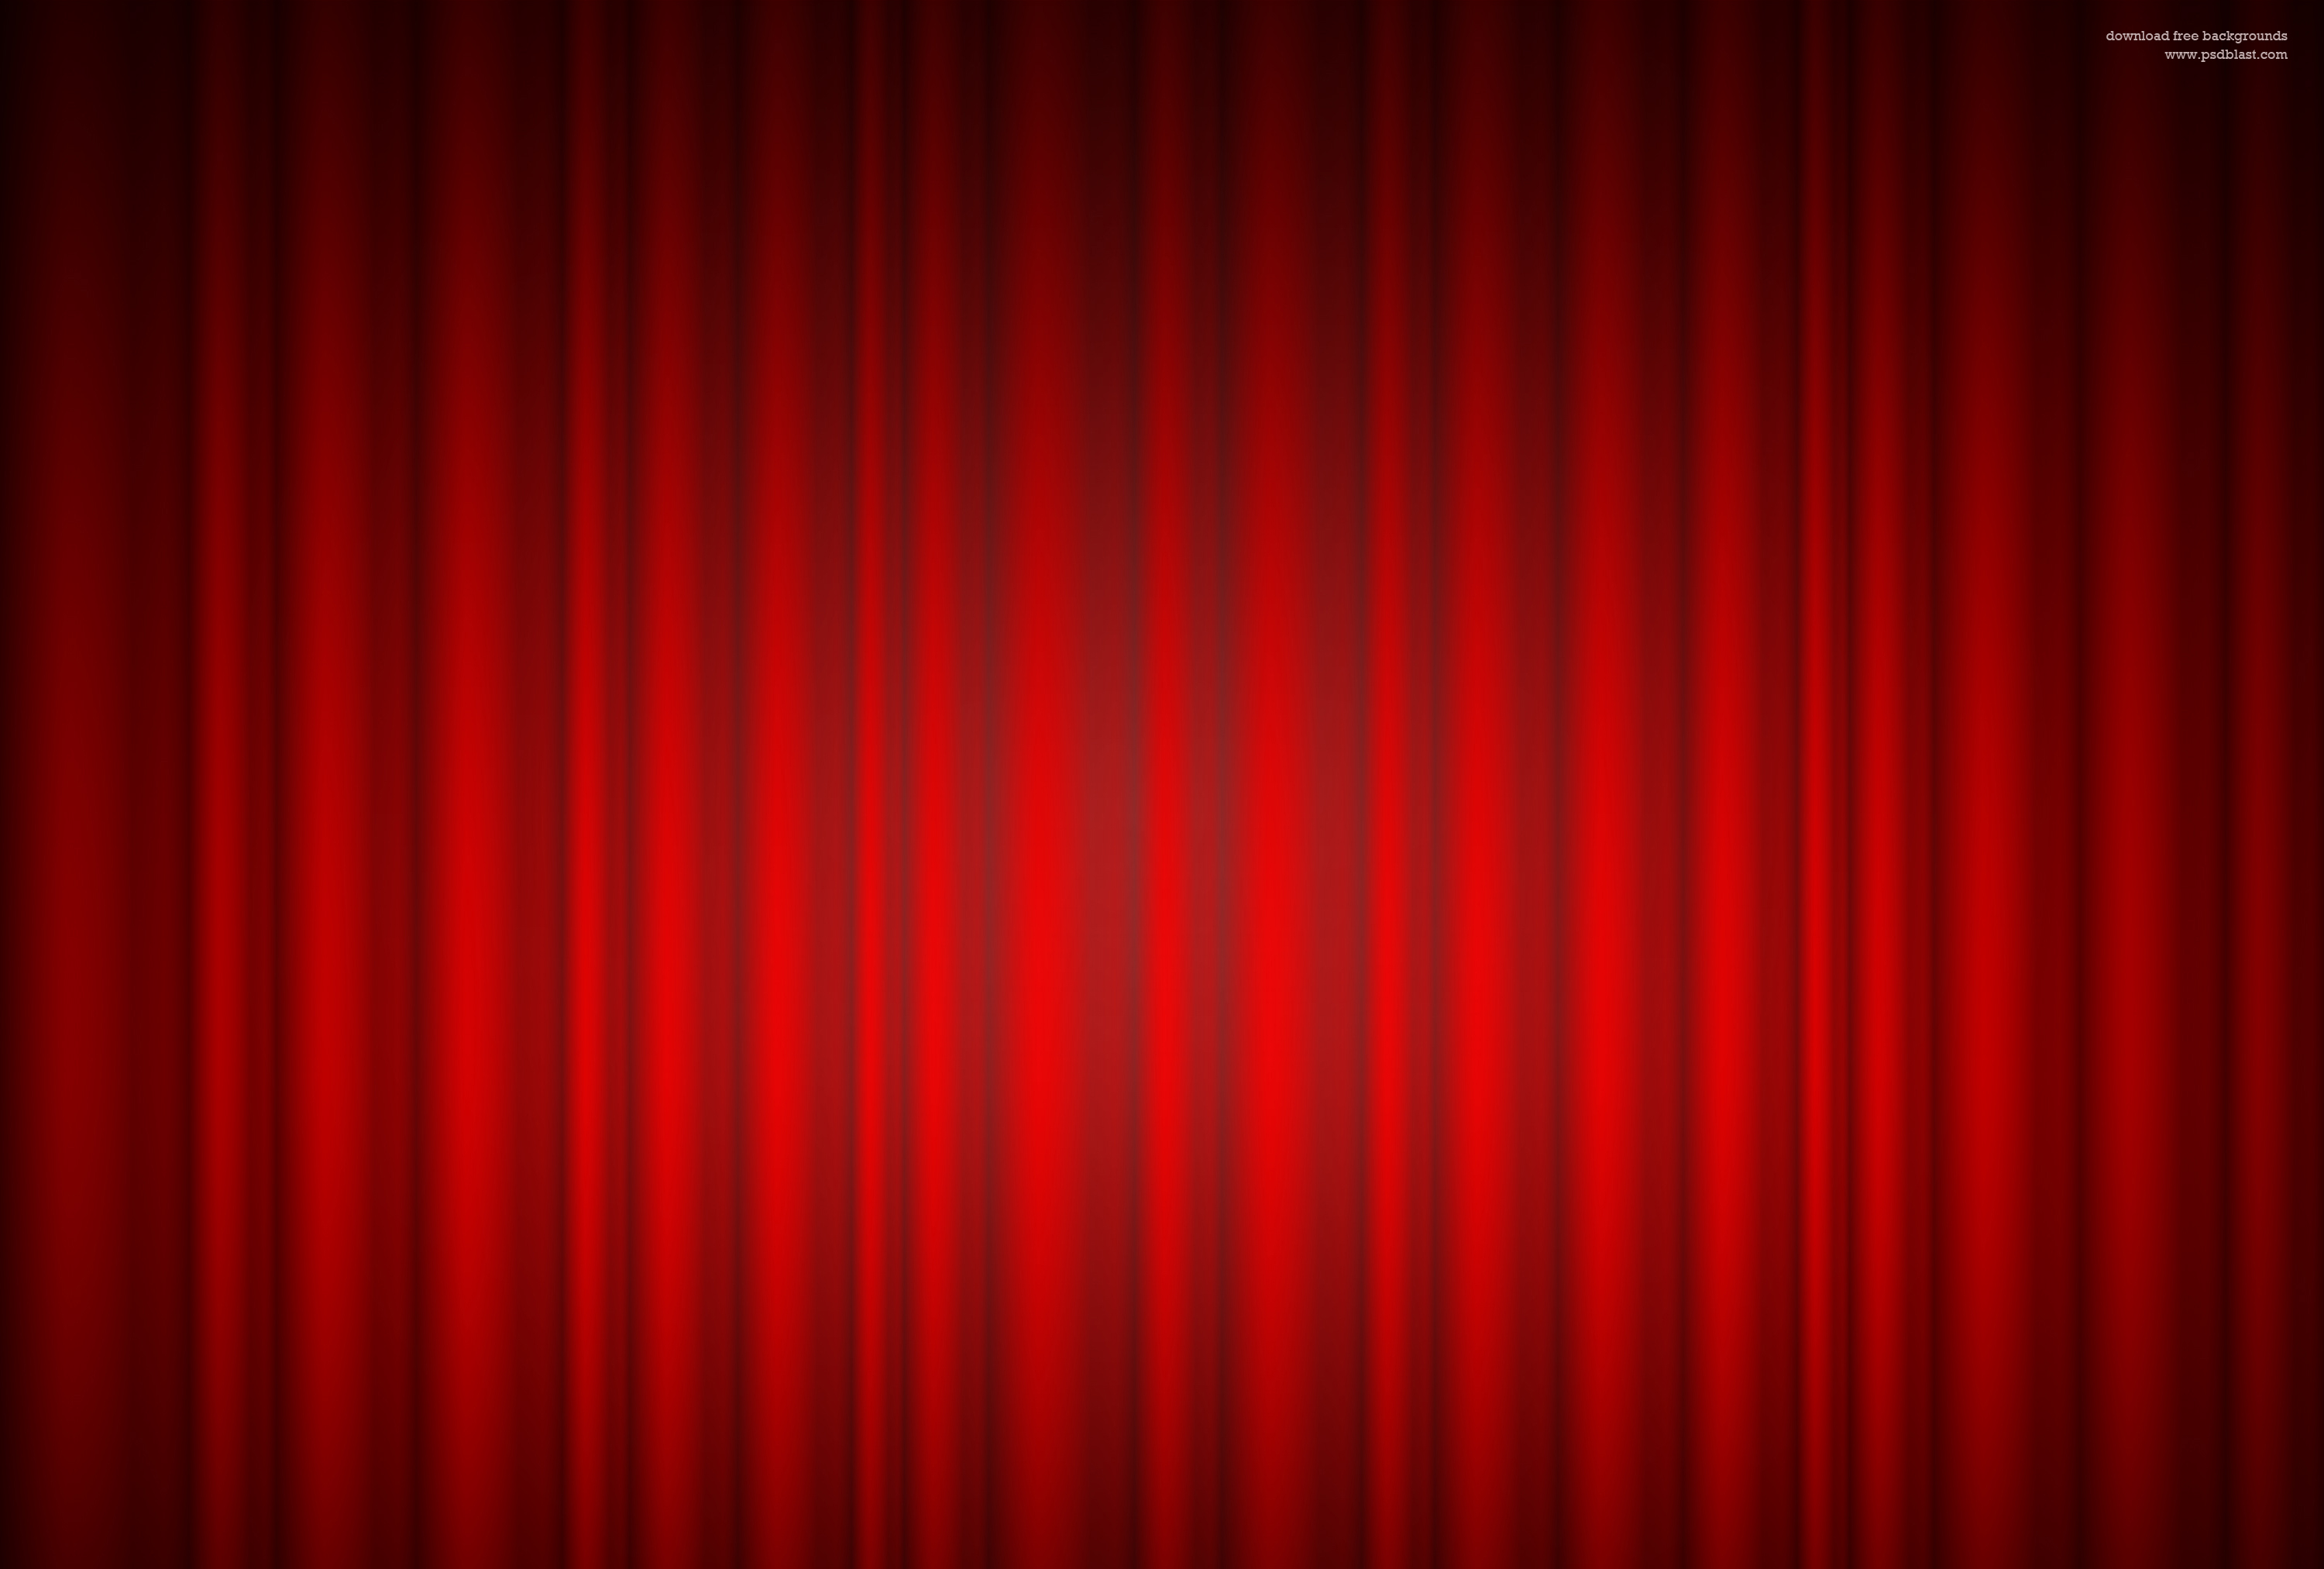 2017 06 stage curtains background - Http Comedyhouse Us Wp Content Uploads 2012 06 Red Curtain Background Jpg